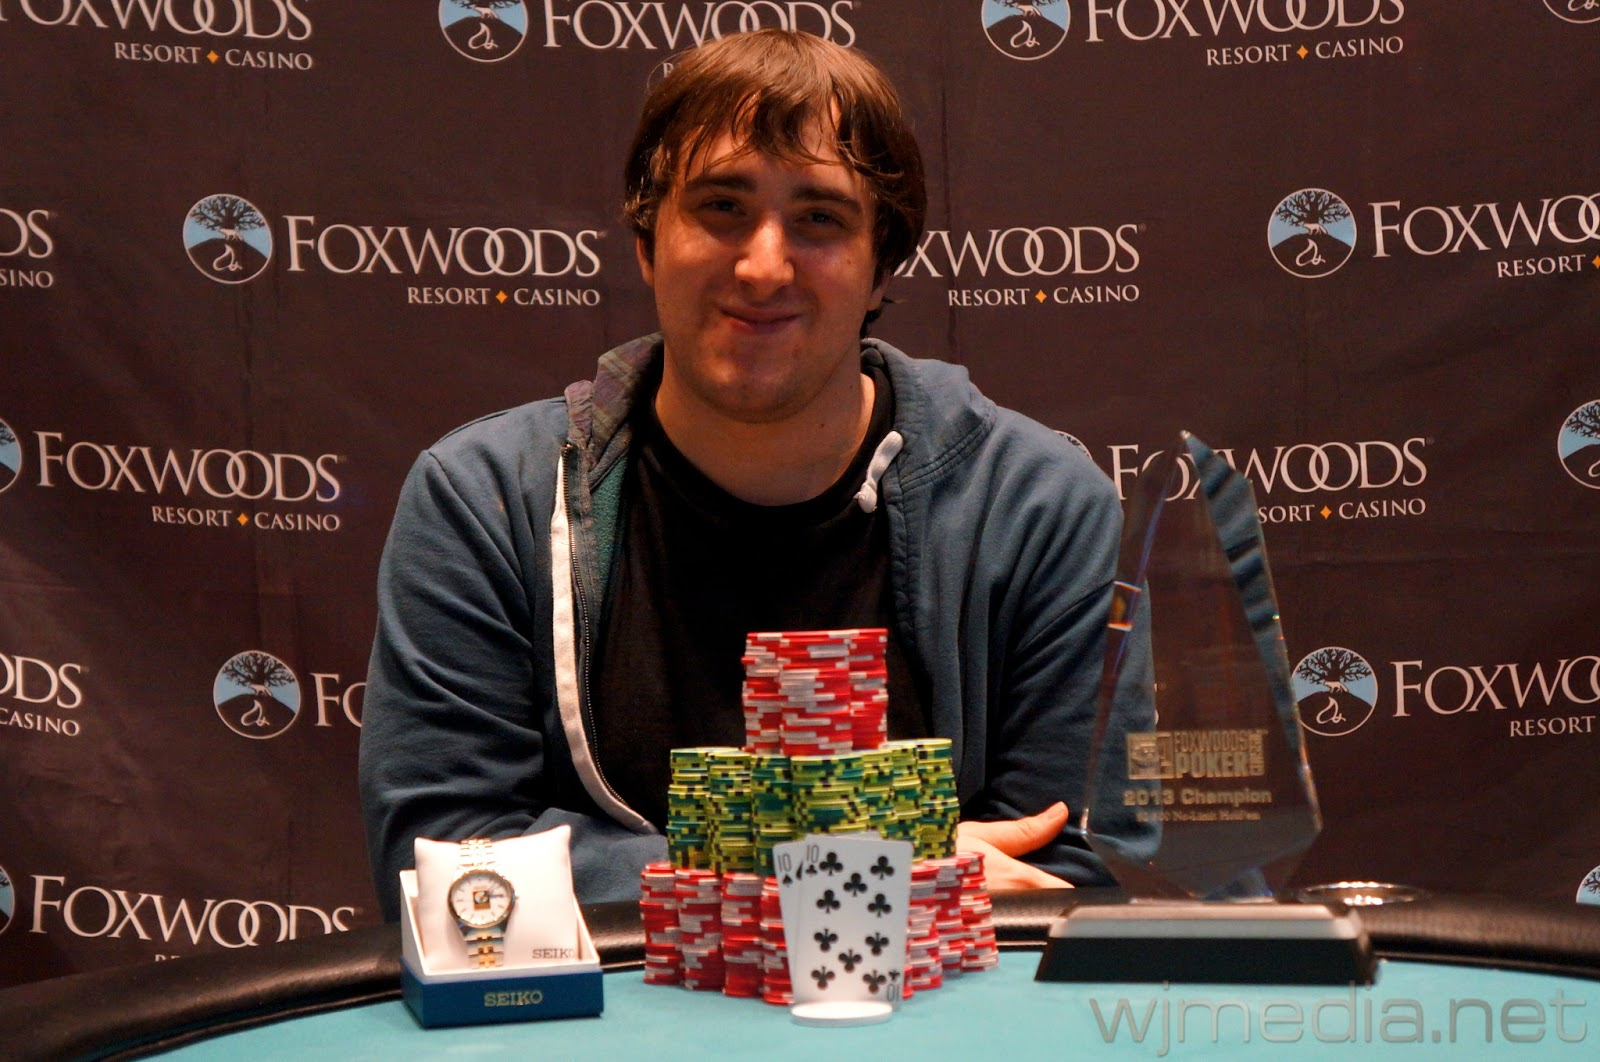 foxwoods poker tournament results 2018